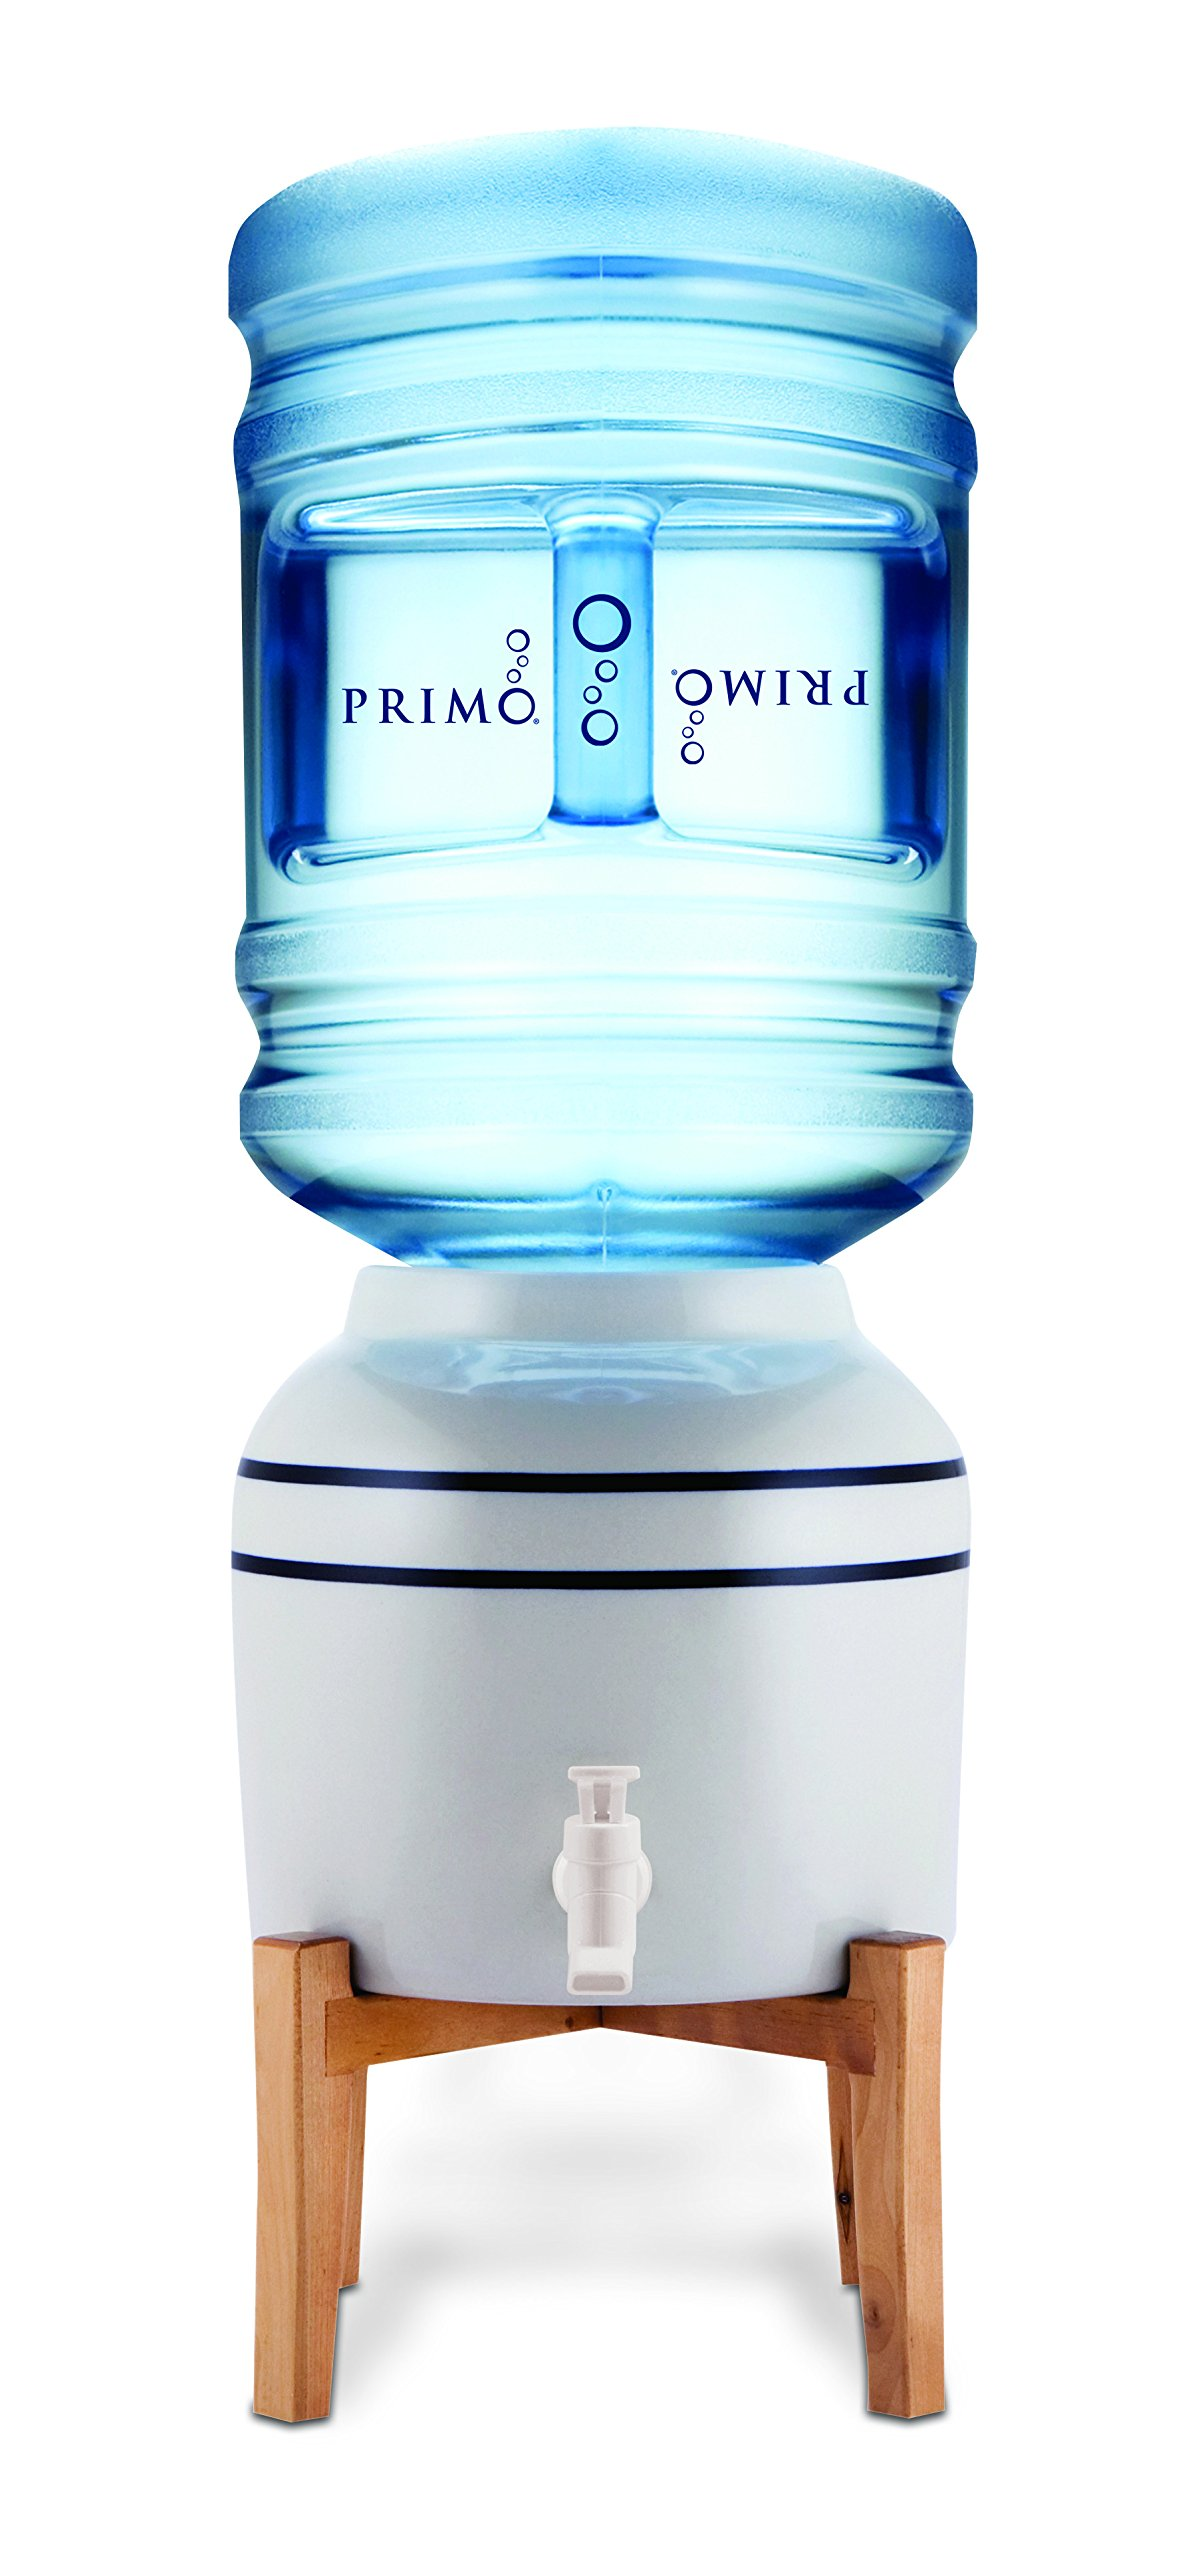 Primo Top Loading Countertop Water Dispenser - Room Temperature - Countertop Ceramic Water Dispenser Supports 3 or 5 Gallon Water Jugs by Primo